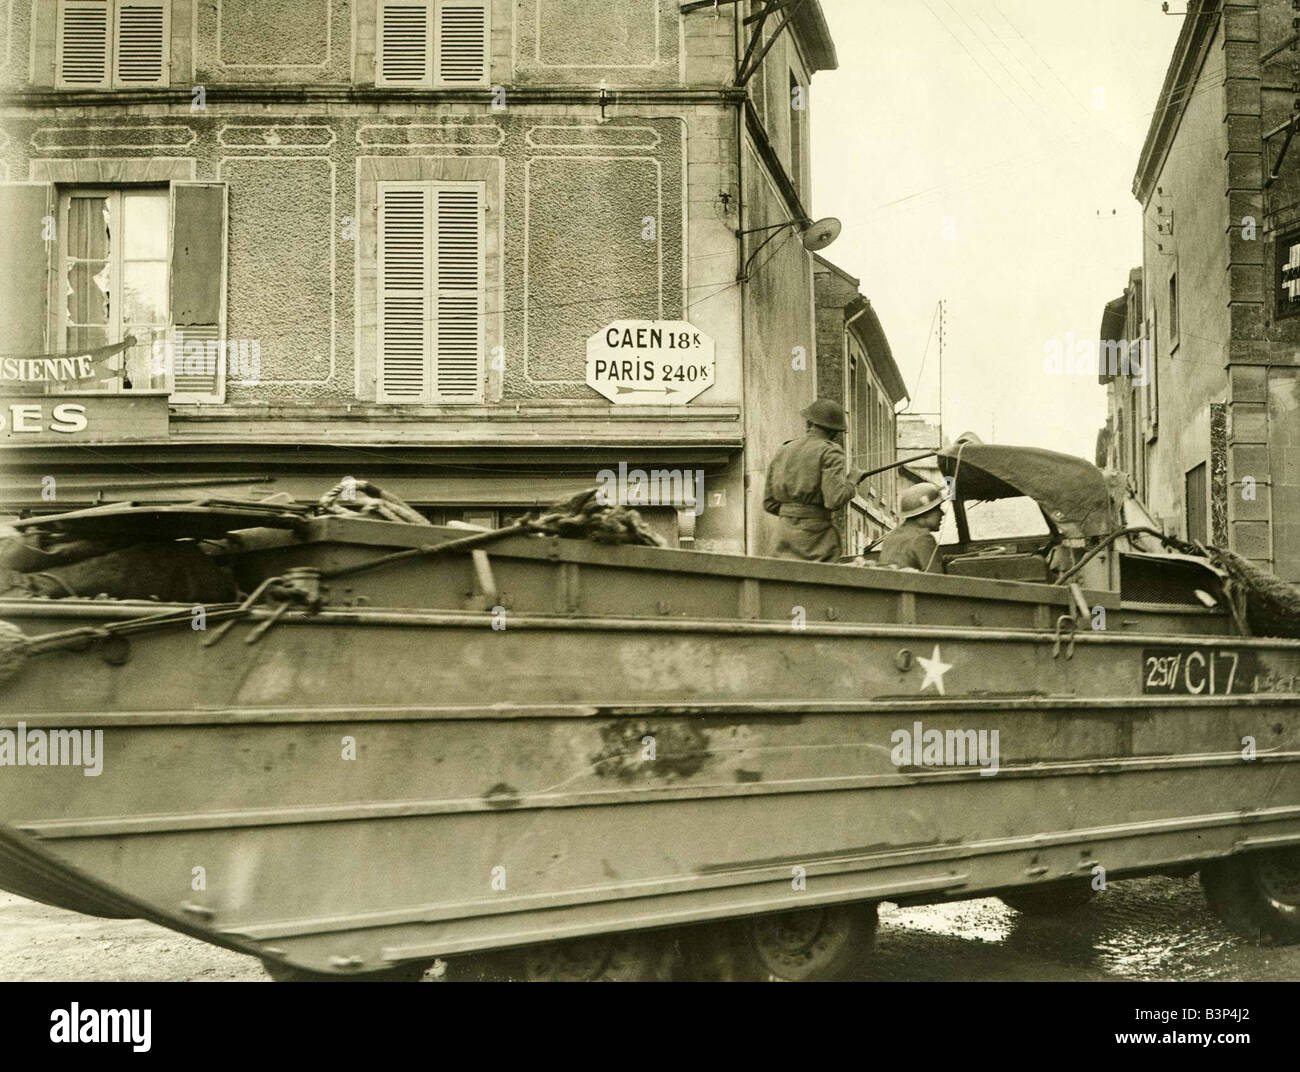 account of the d day during world war ii The pivotal world war ii battle took place 70 years ago today  story highlights   a major turning point in world war ii, the d-day invasion of normandy paved  the way for the liberation of paris and the eventual defeat of nazi.